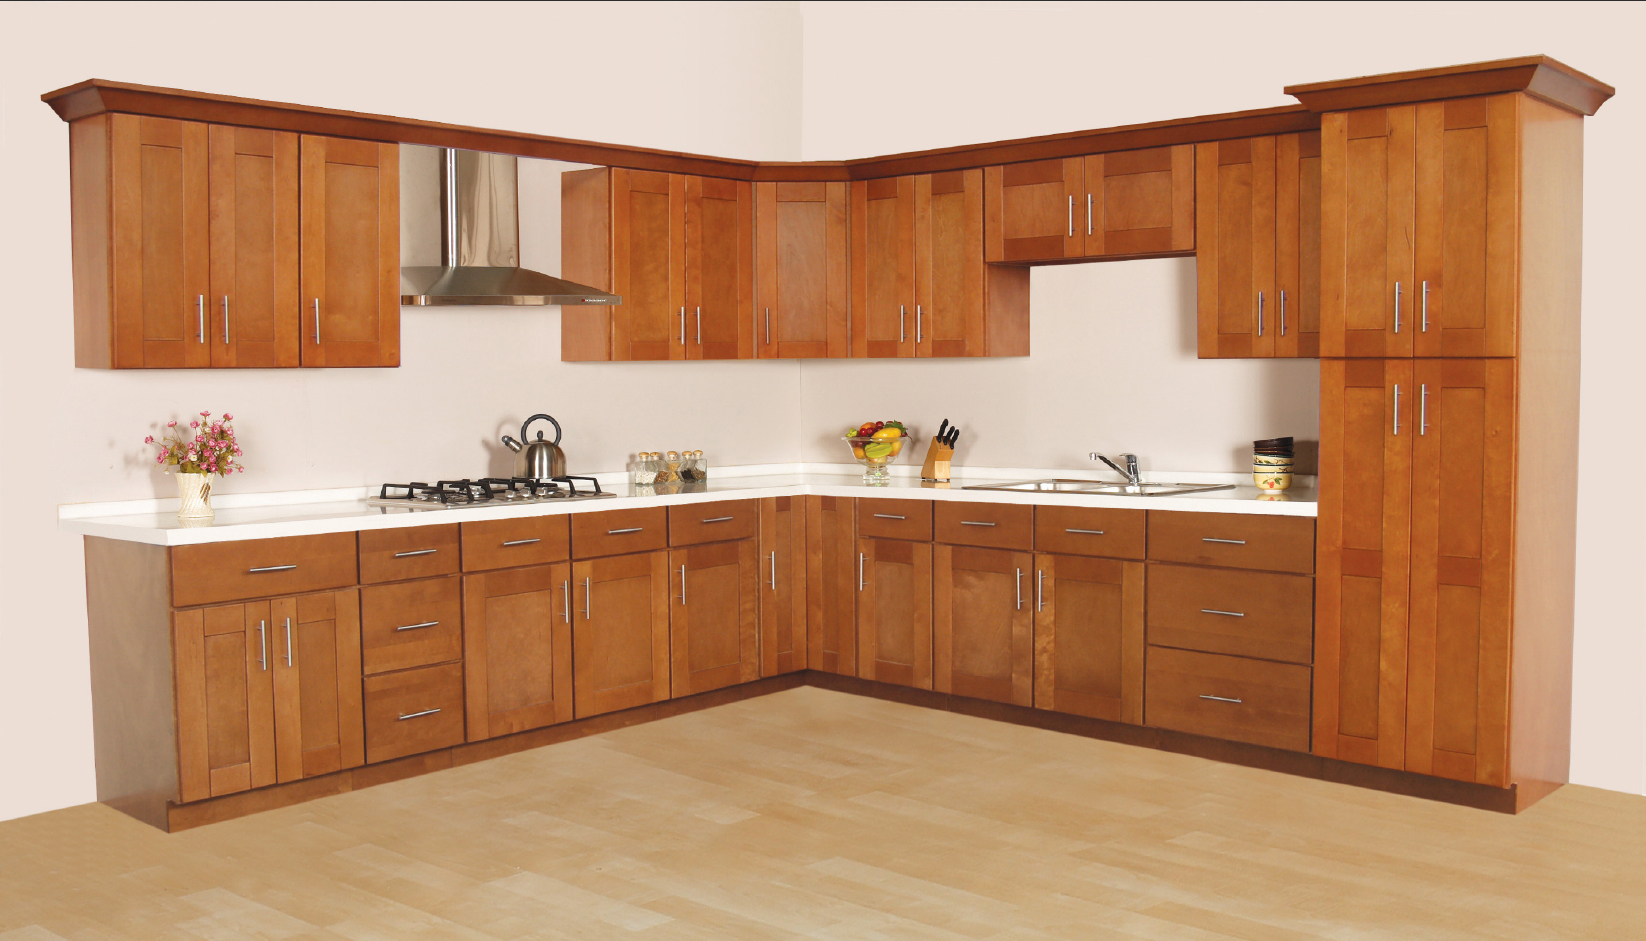 Menards kitchen cabinet price and details home and for Kitchen units